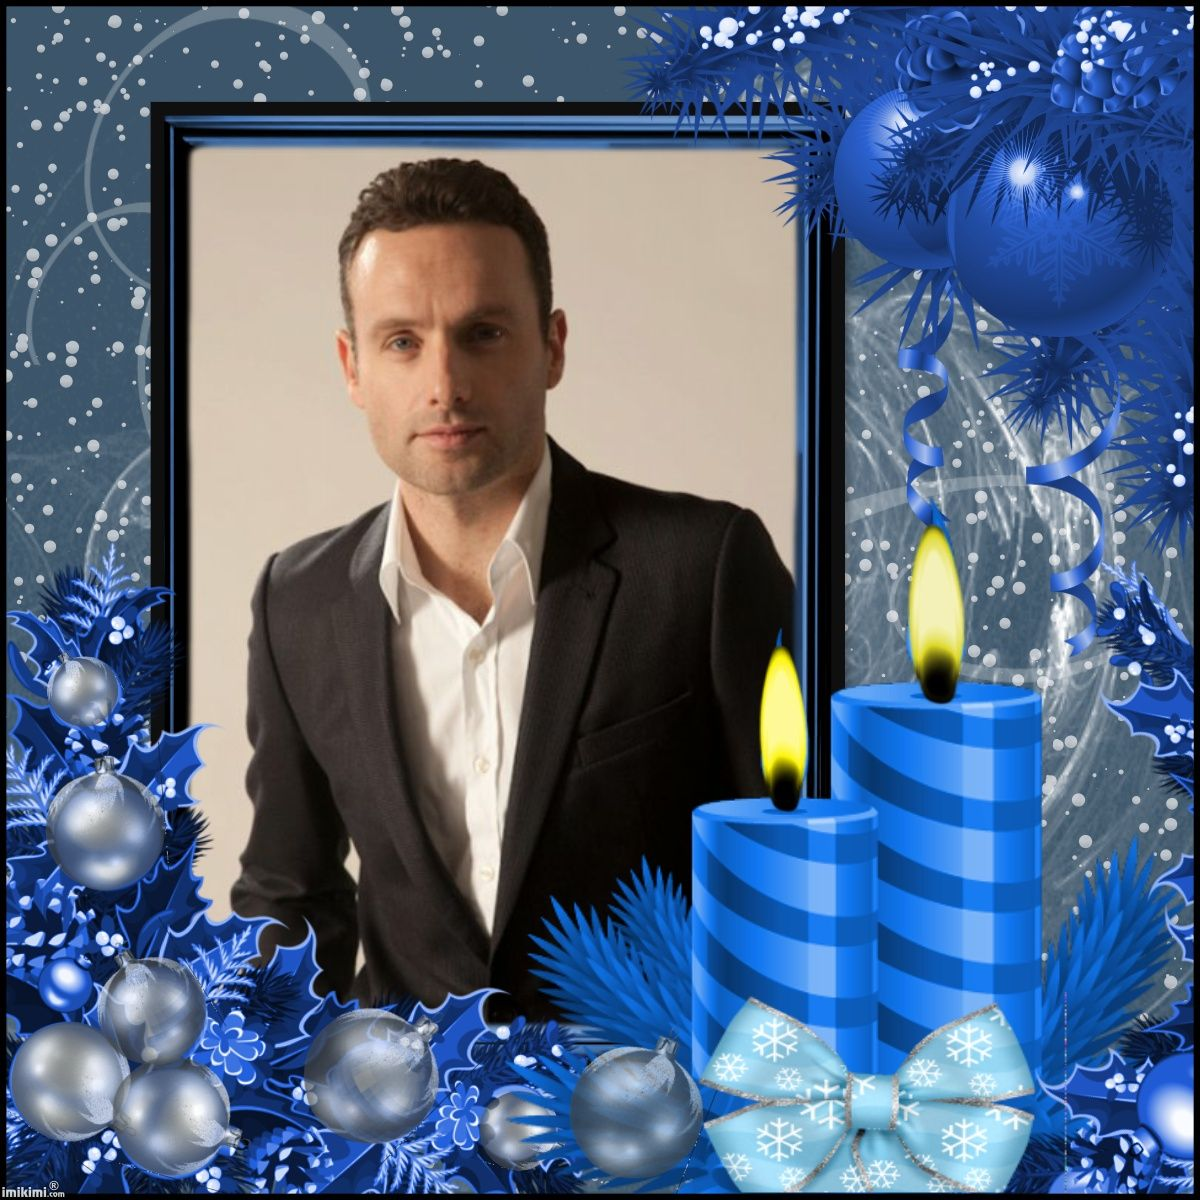 MERRY CHRISTMAS ☆ Andrew Lincoln Aka Rick Grimes From The